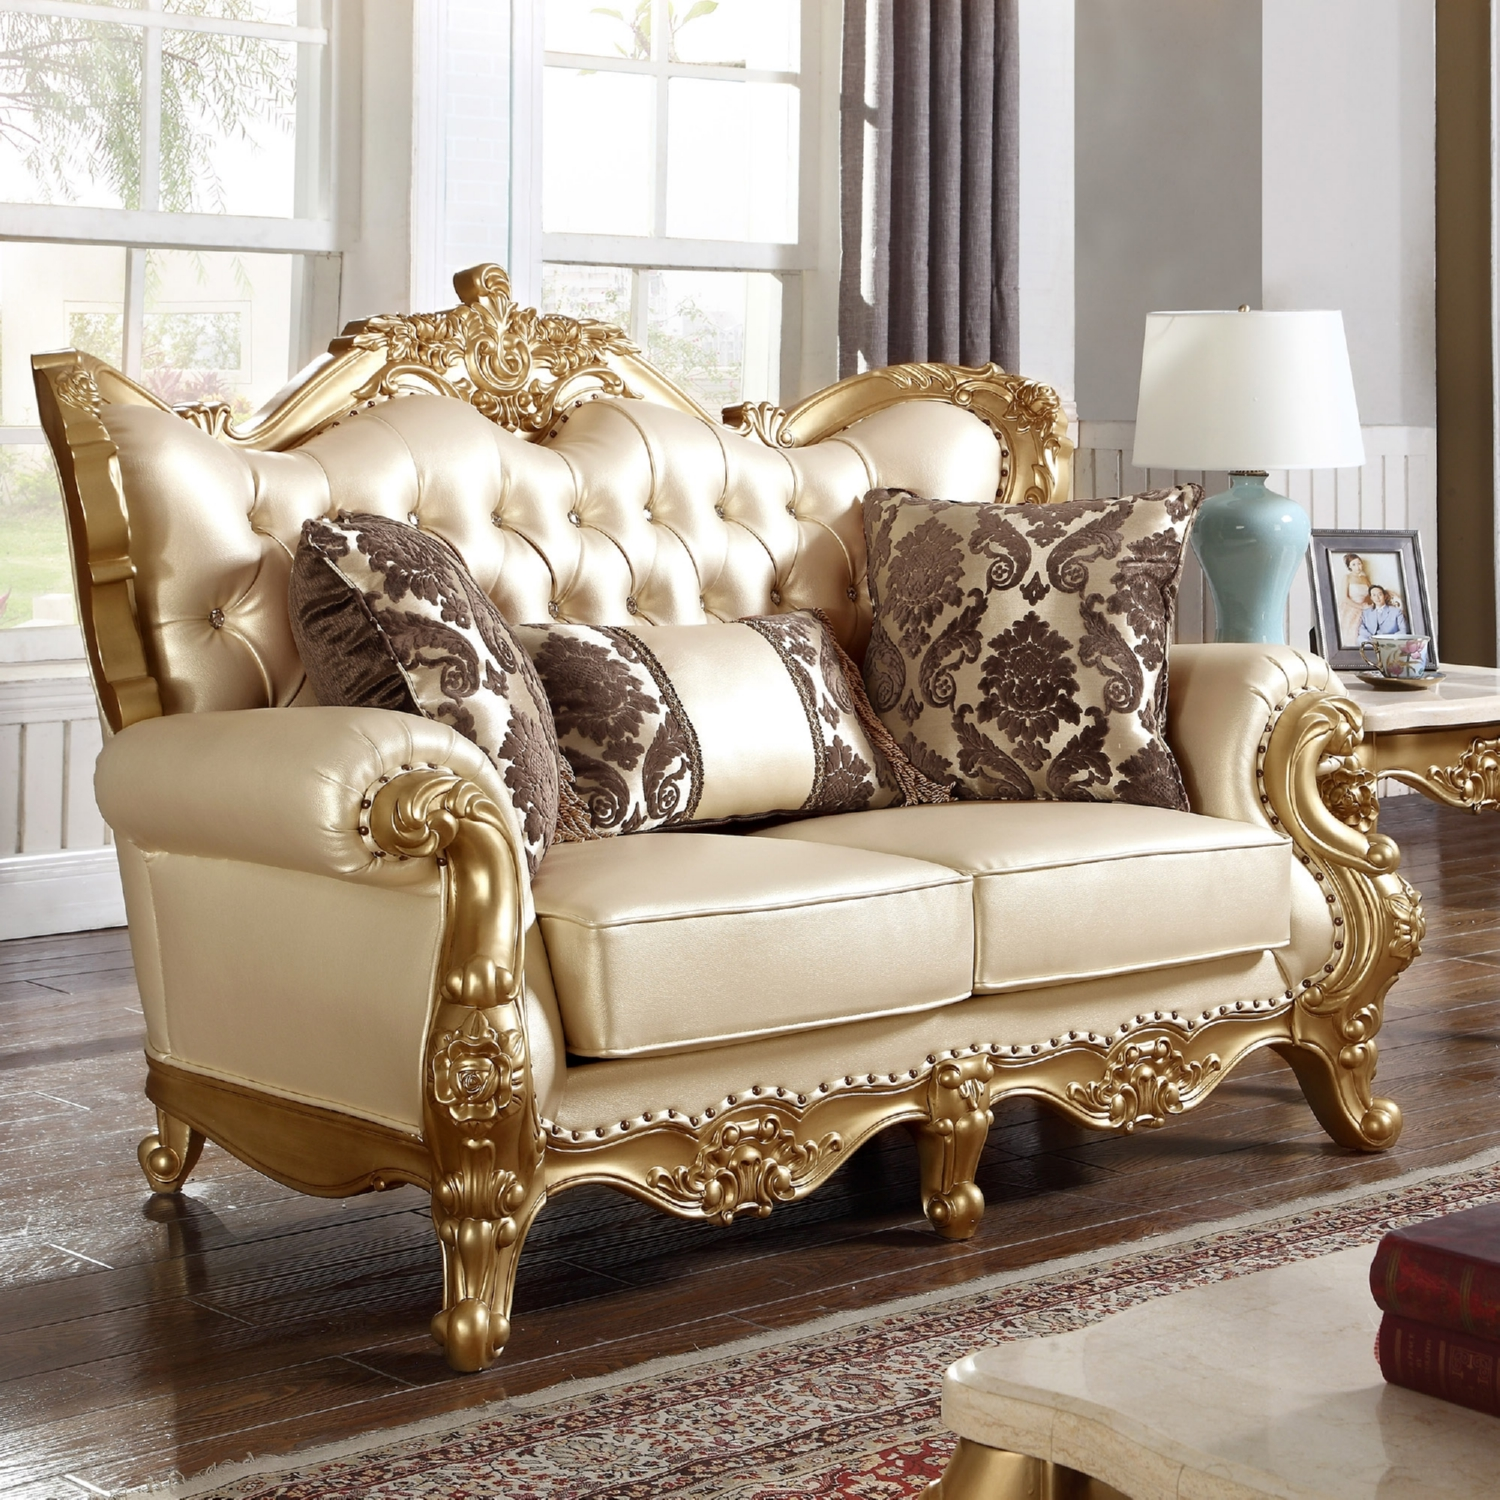 Amazing Meridian Furniture 676 L Bennito Pearl Tufted Leather Loveseat On Ornate  Gold Frame